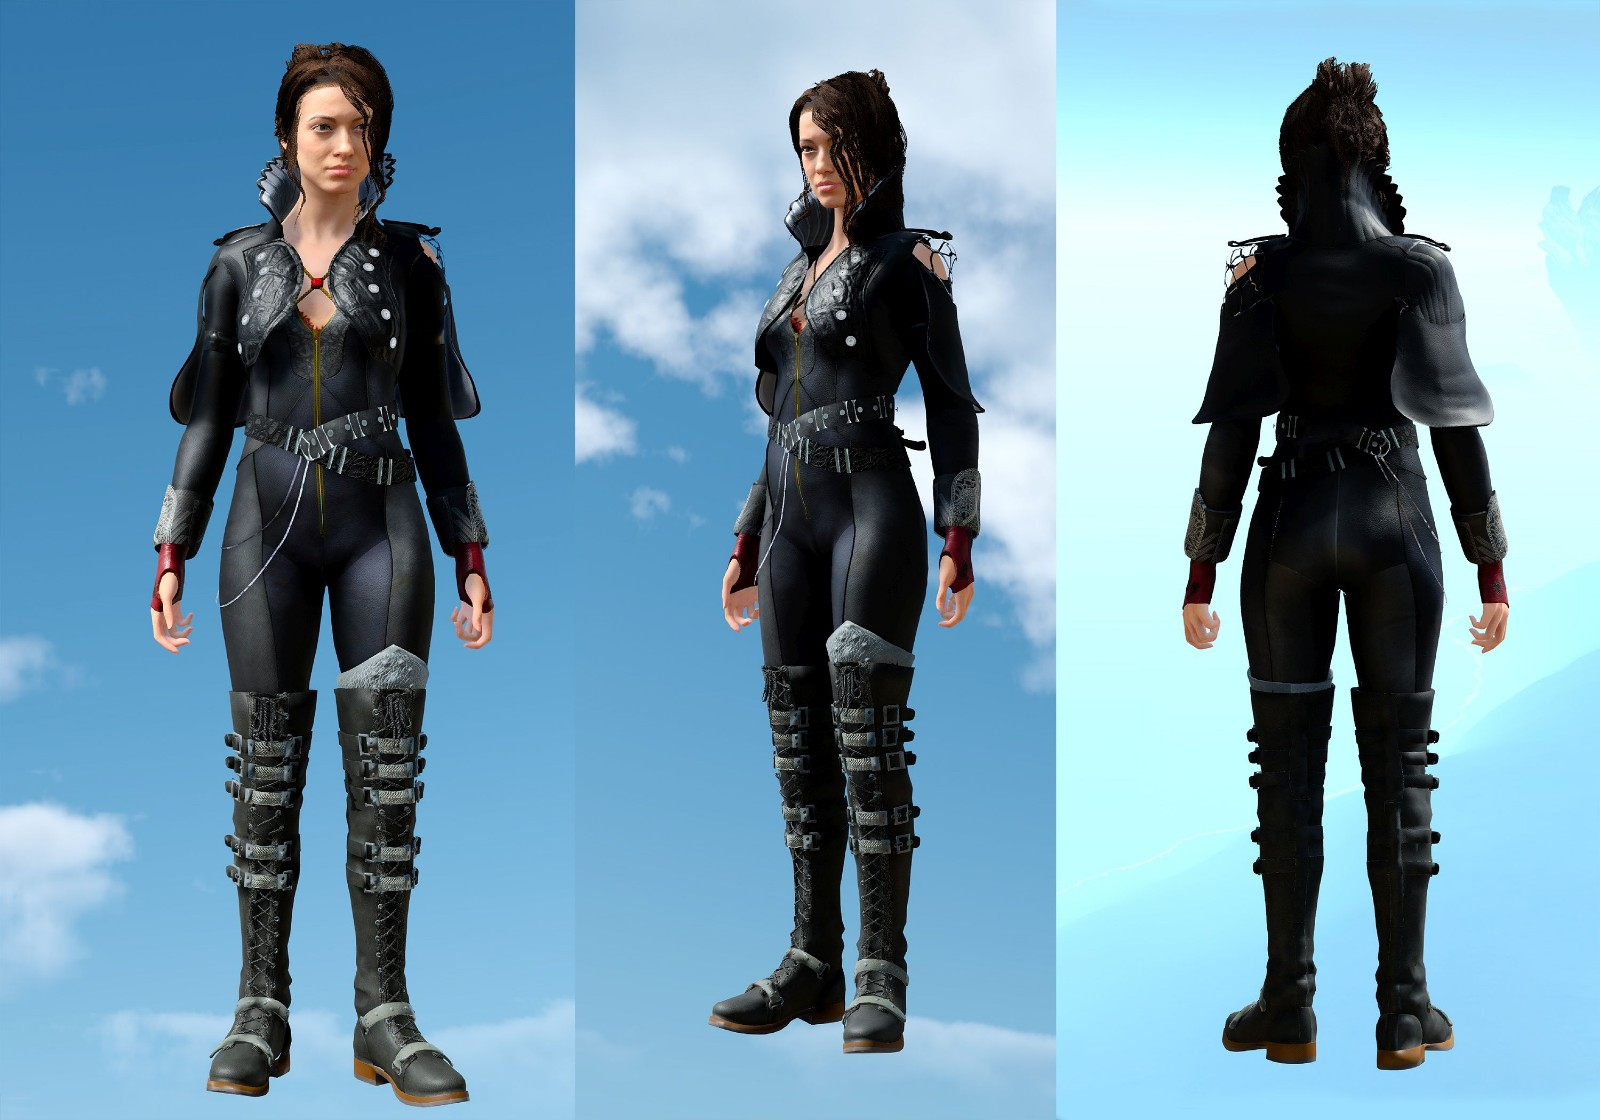 Crowe Kingsglaive Mage Jacket CAPELESS (female multi tops)